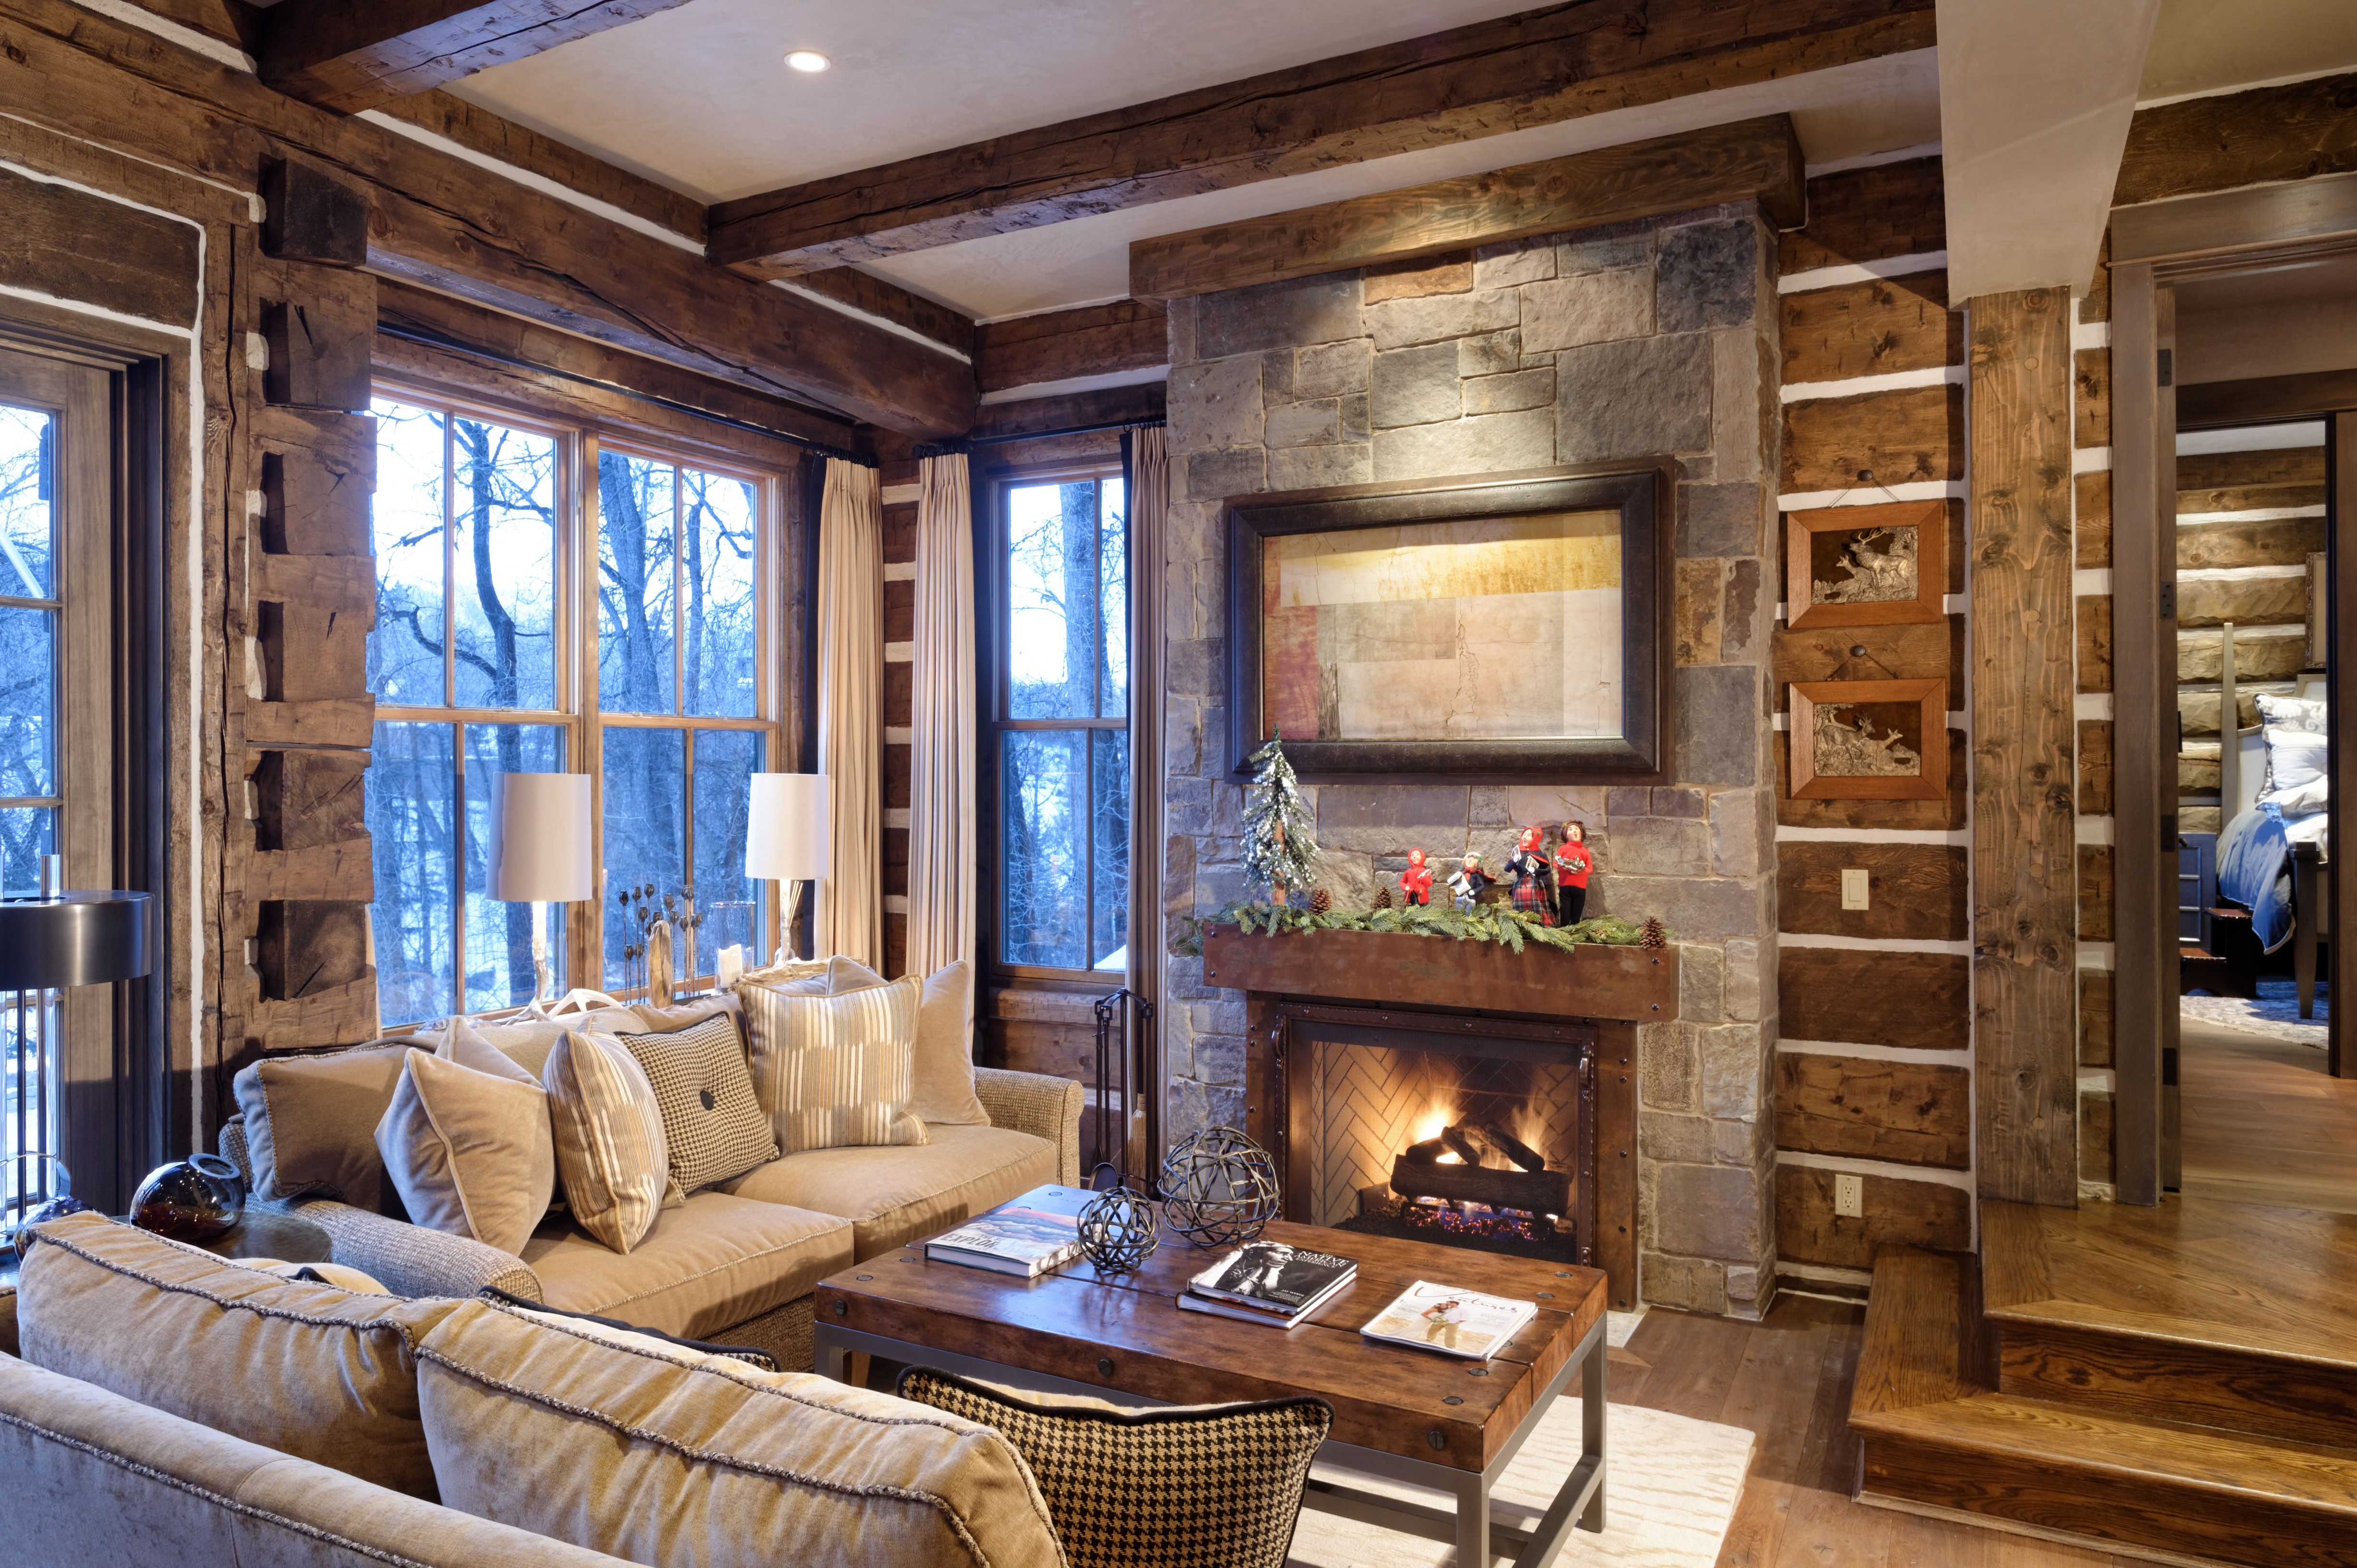 small talentneeds decor about home com rentals luxury with inspiration nifty cabins cabin carolina remodel in north for vacation log delicieux resorts